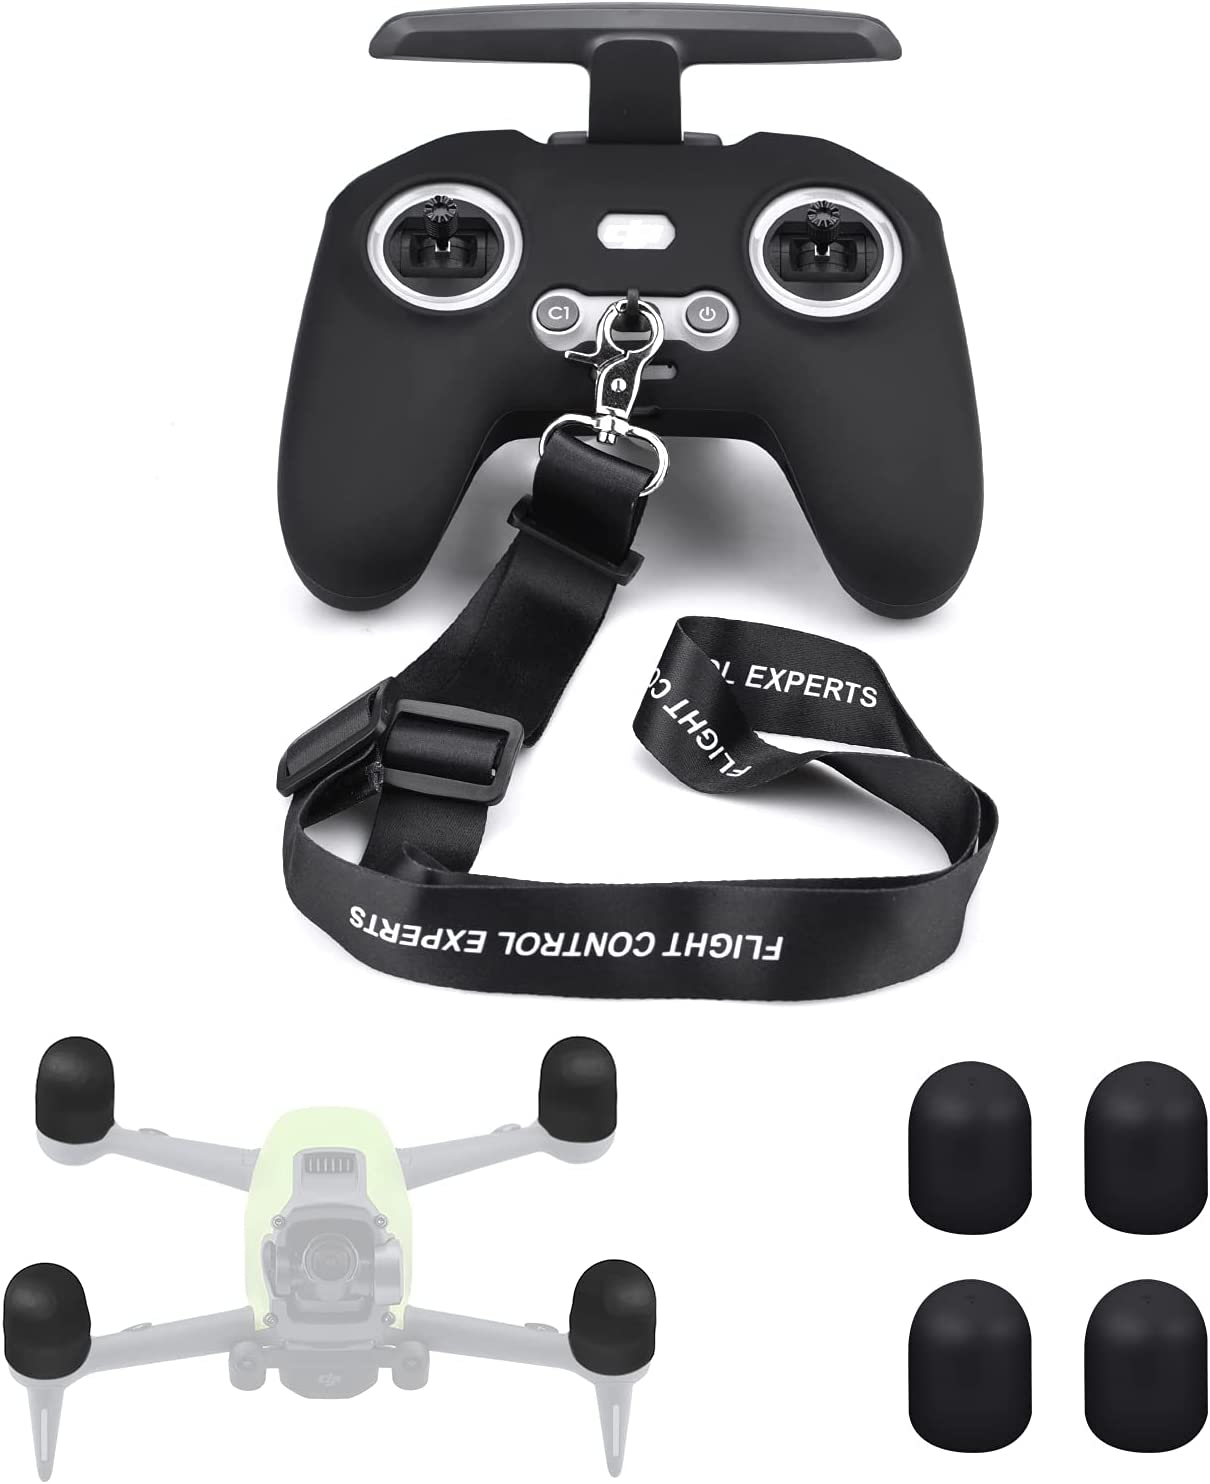 HeiyRC 3 in 1 Remote Controller Fort Worth Mall Rapid rise with Silicone Cover Case Lanyard